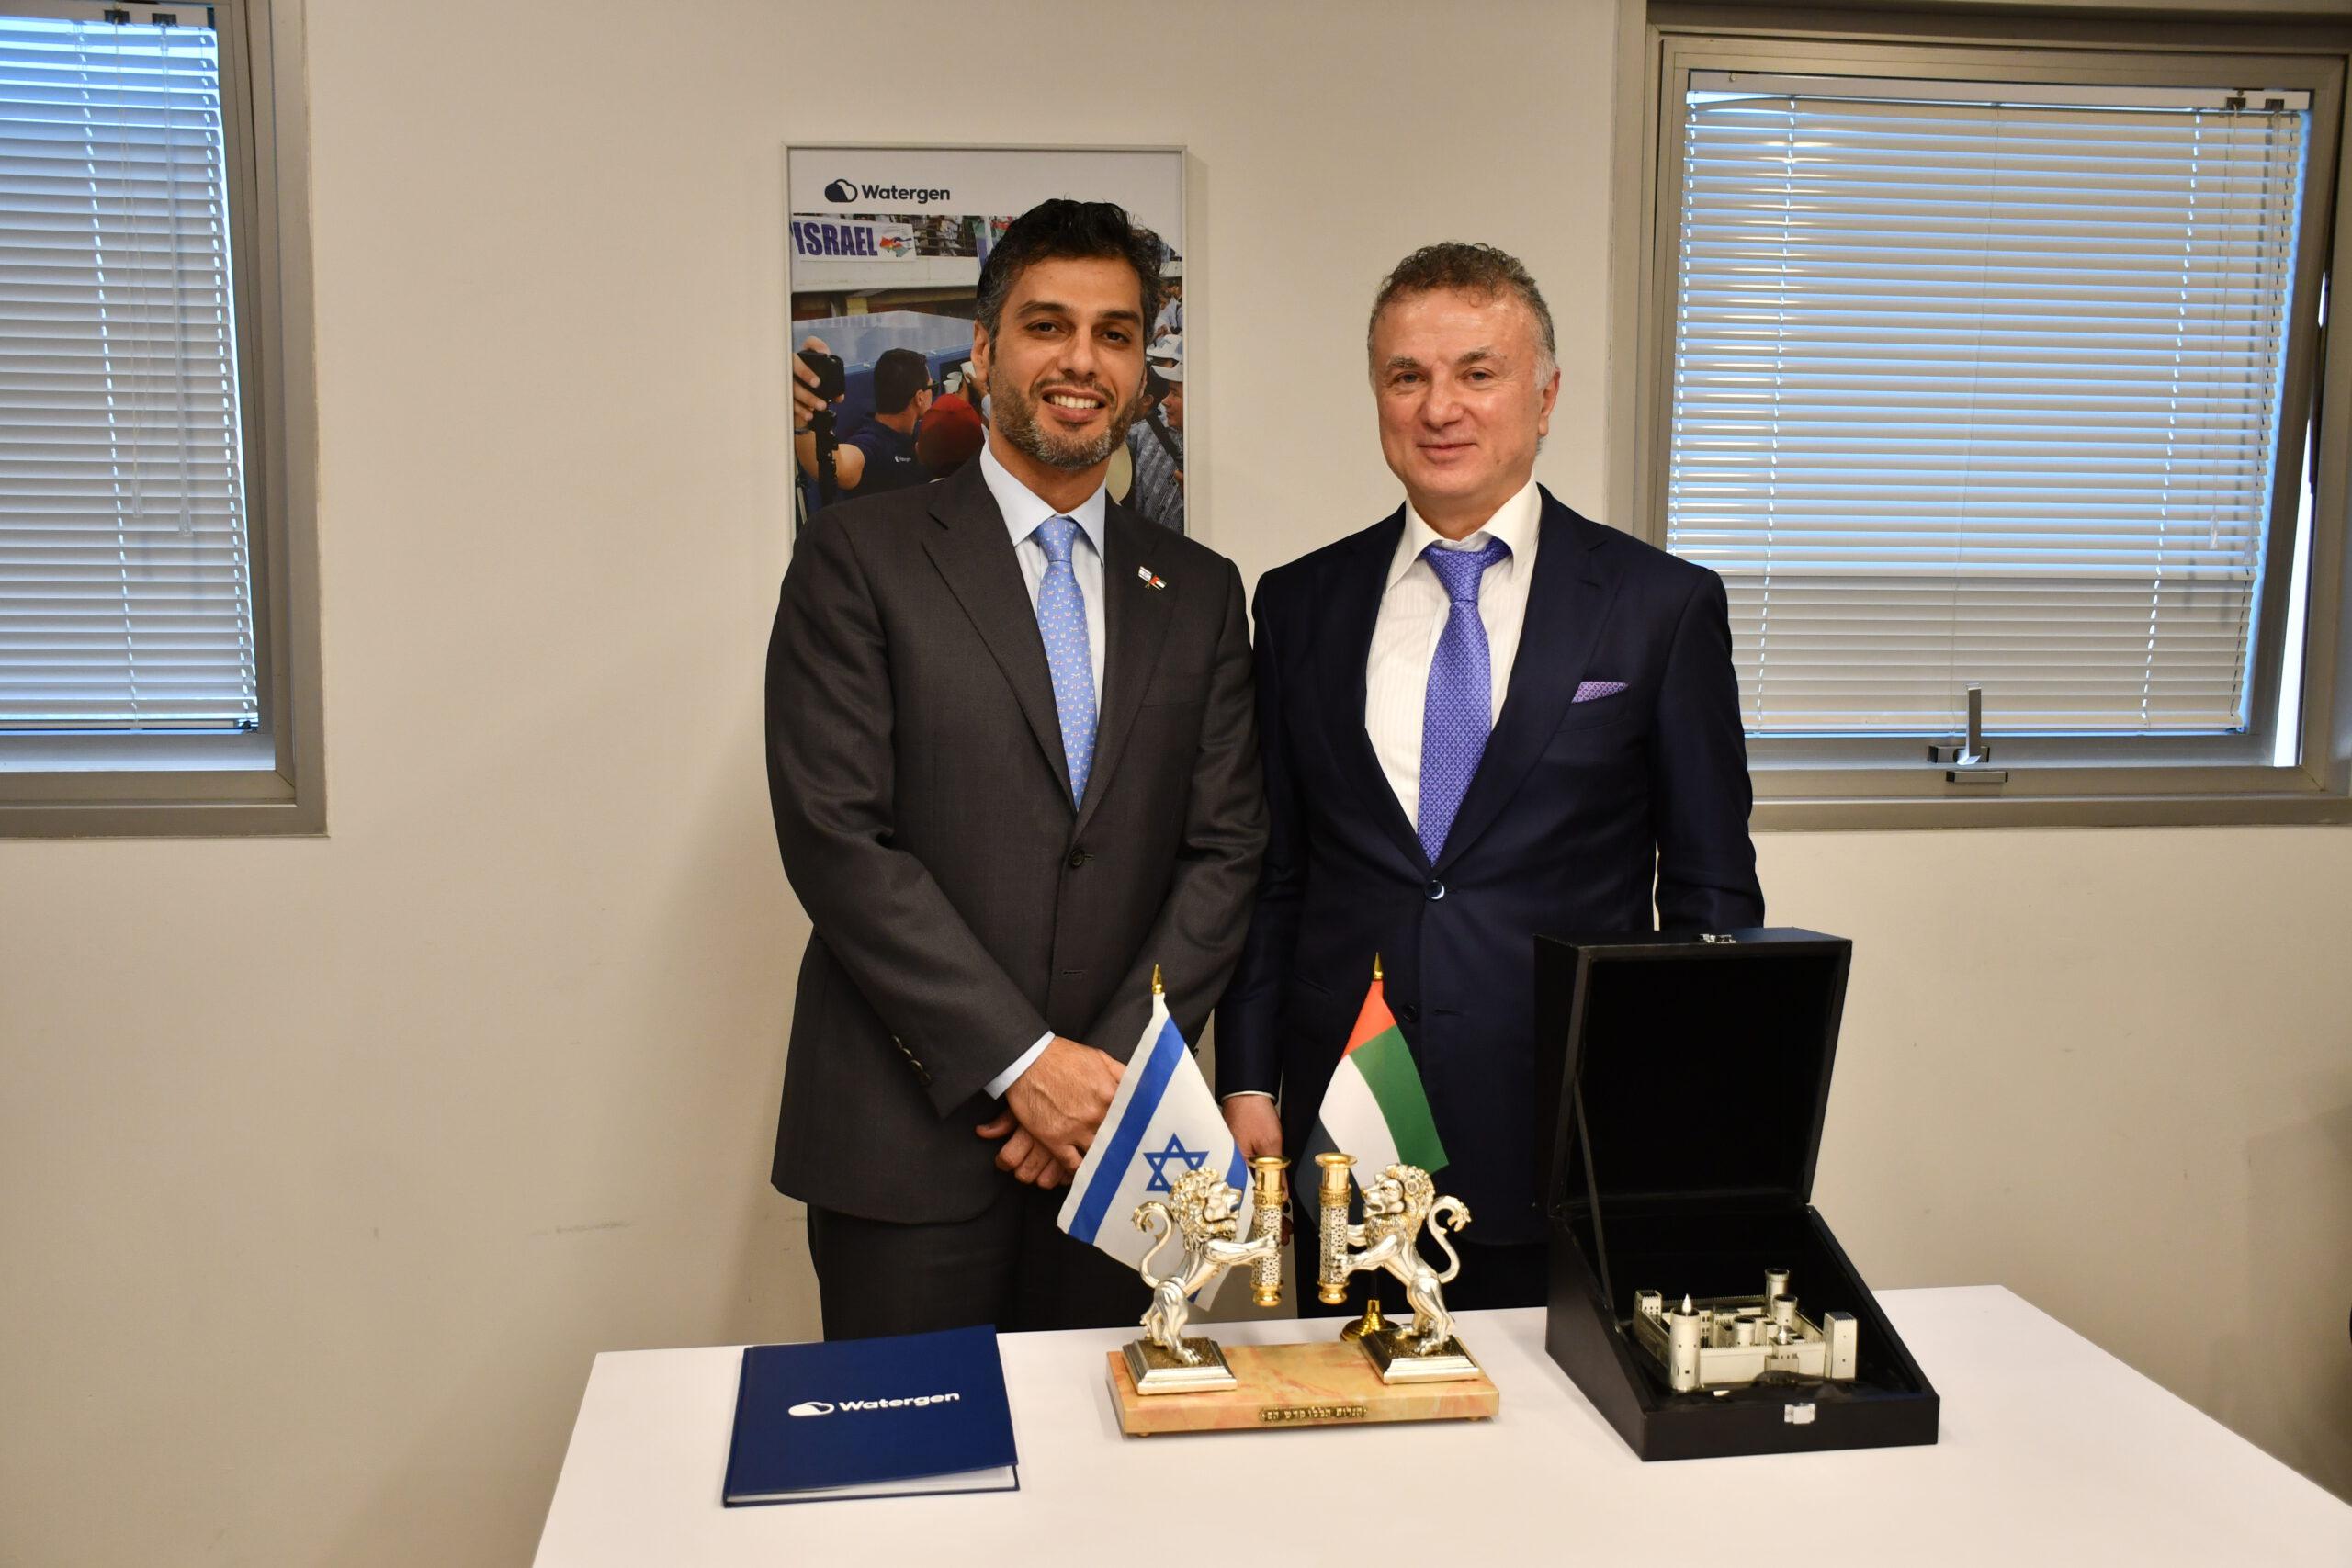 The Ambassador of UAE hosted at Watergen's headquarters.